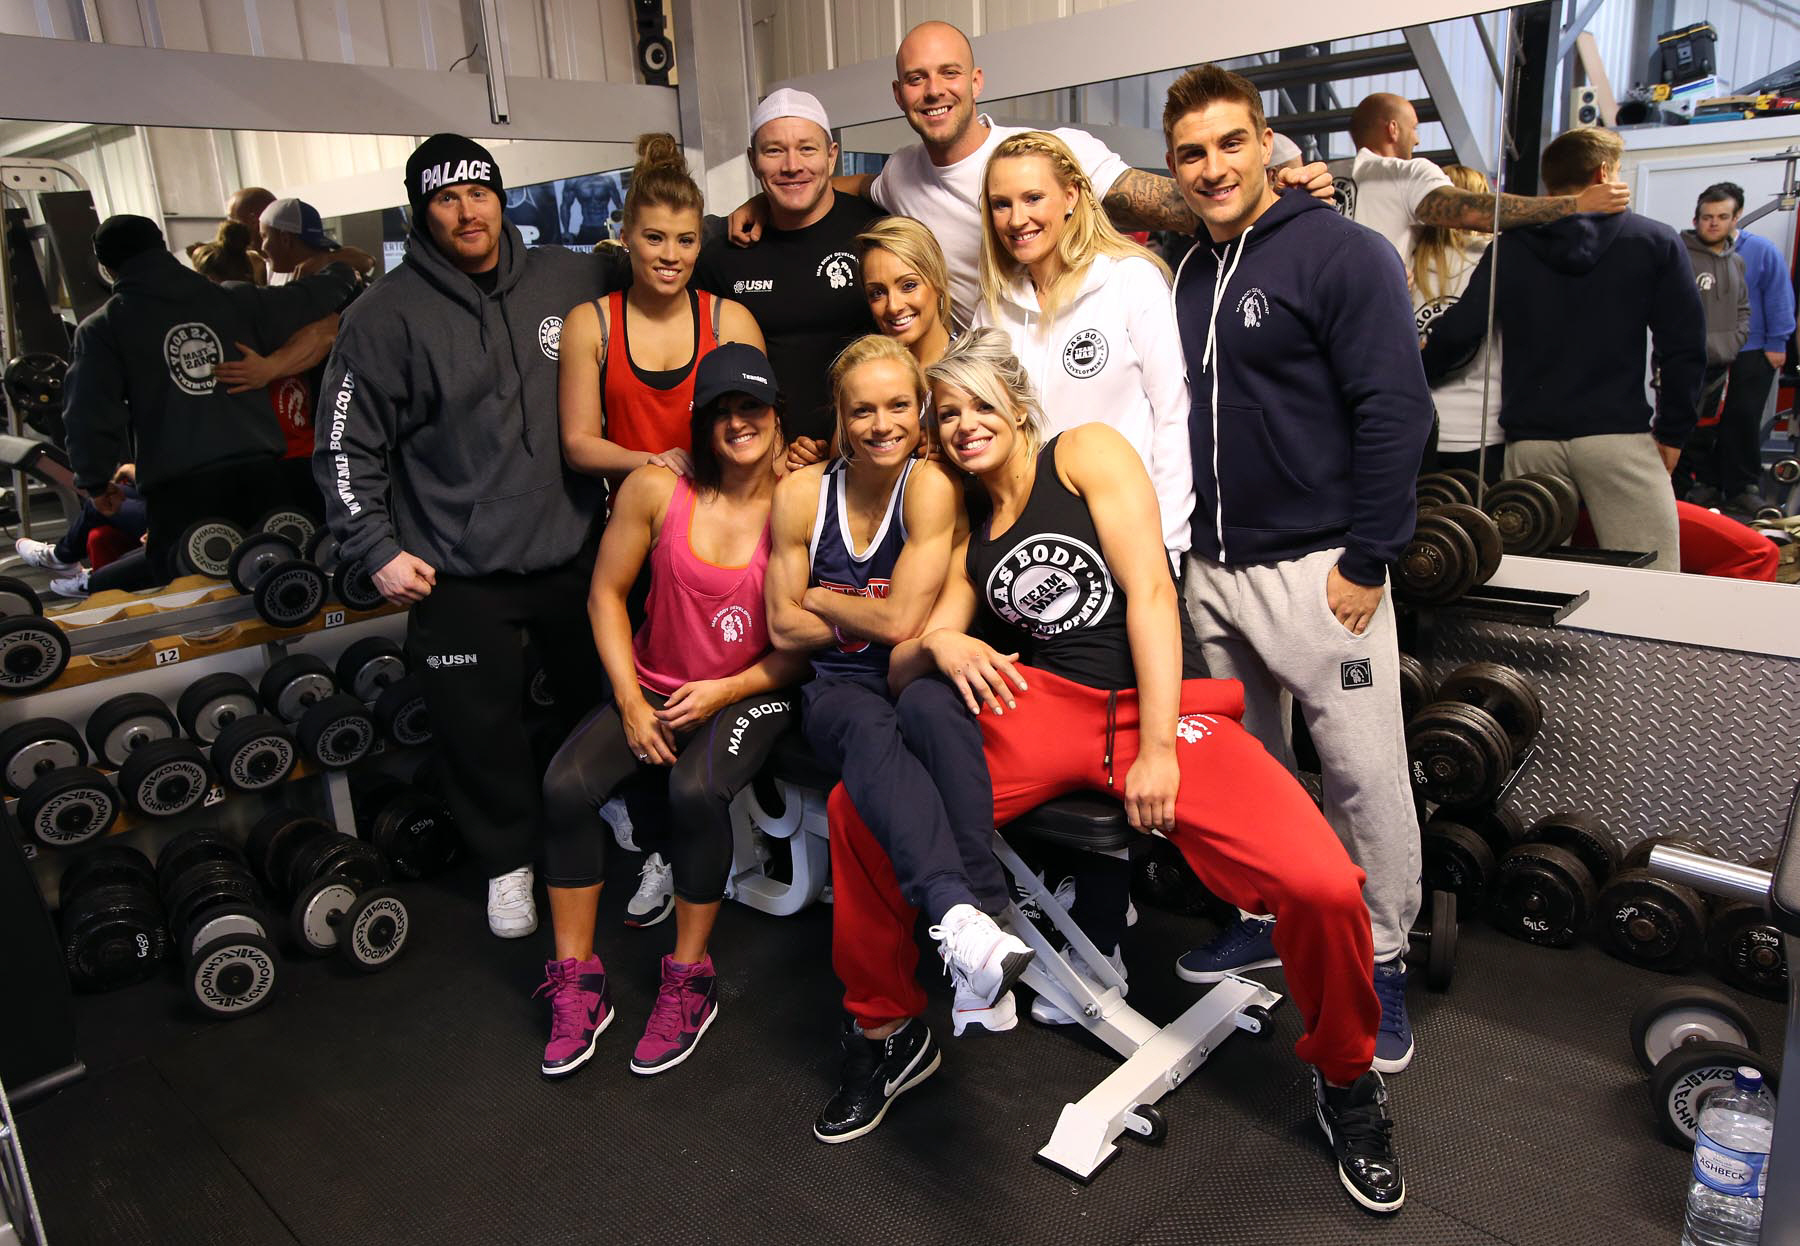 Mike Hind, pictured third from right on the back row, with staff and bodybuilders in the company's gym